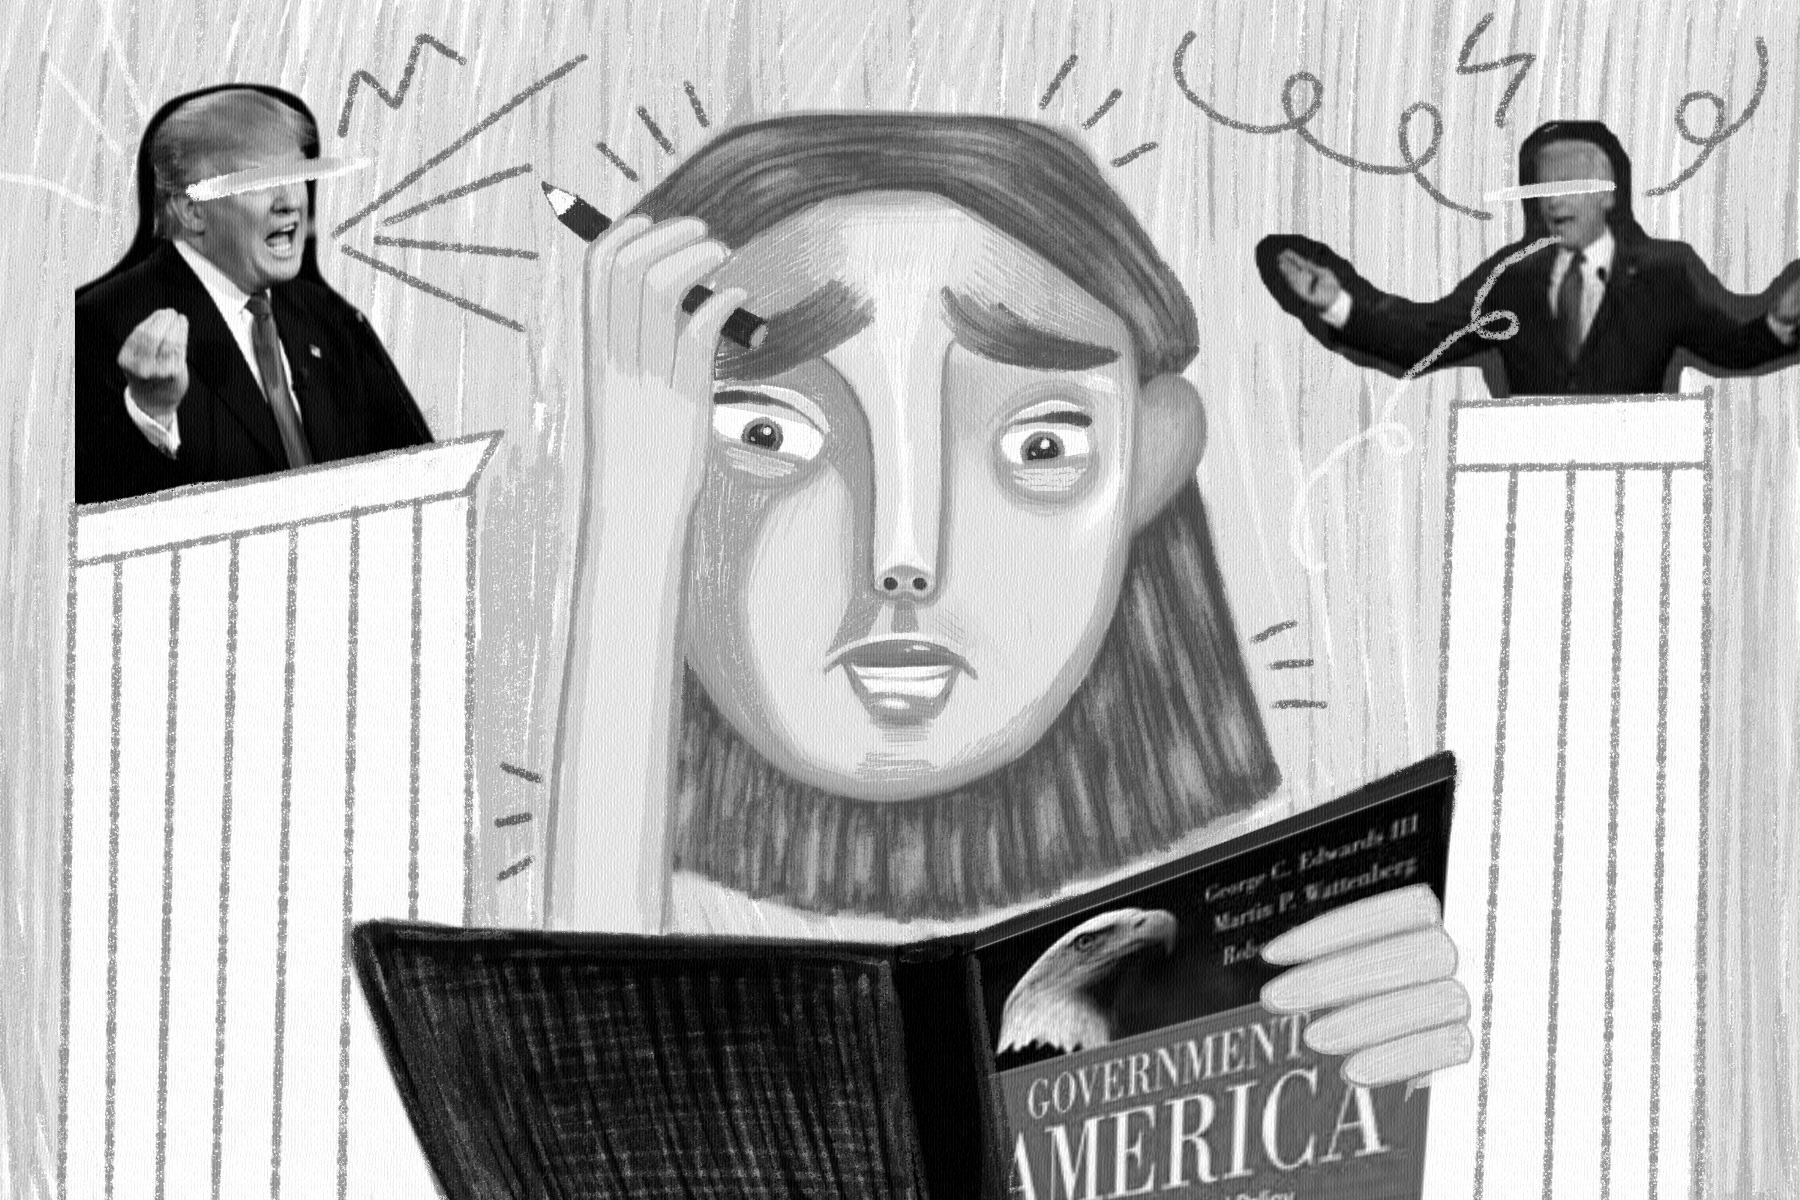 In an article about political language and the confusion it can cause, an illustration by Sid Estelle of a student looking confused at a history textbook as Joe Biden and Donald Trump debate behind them